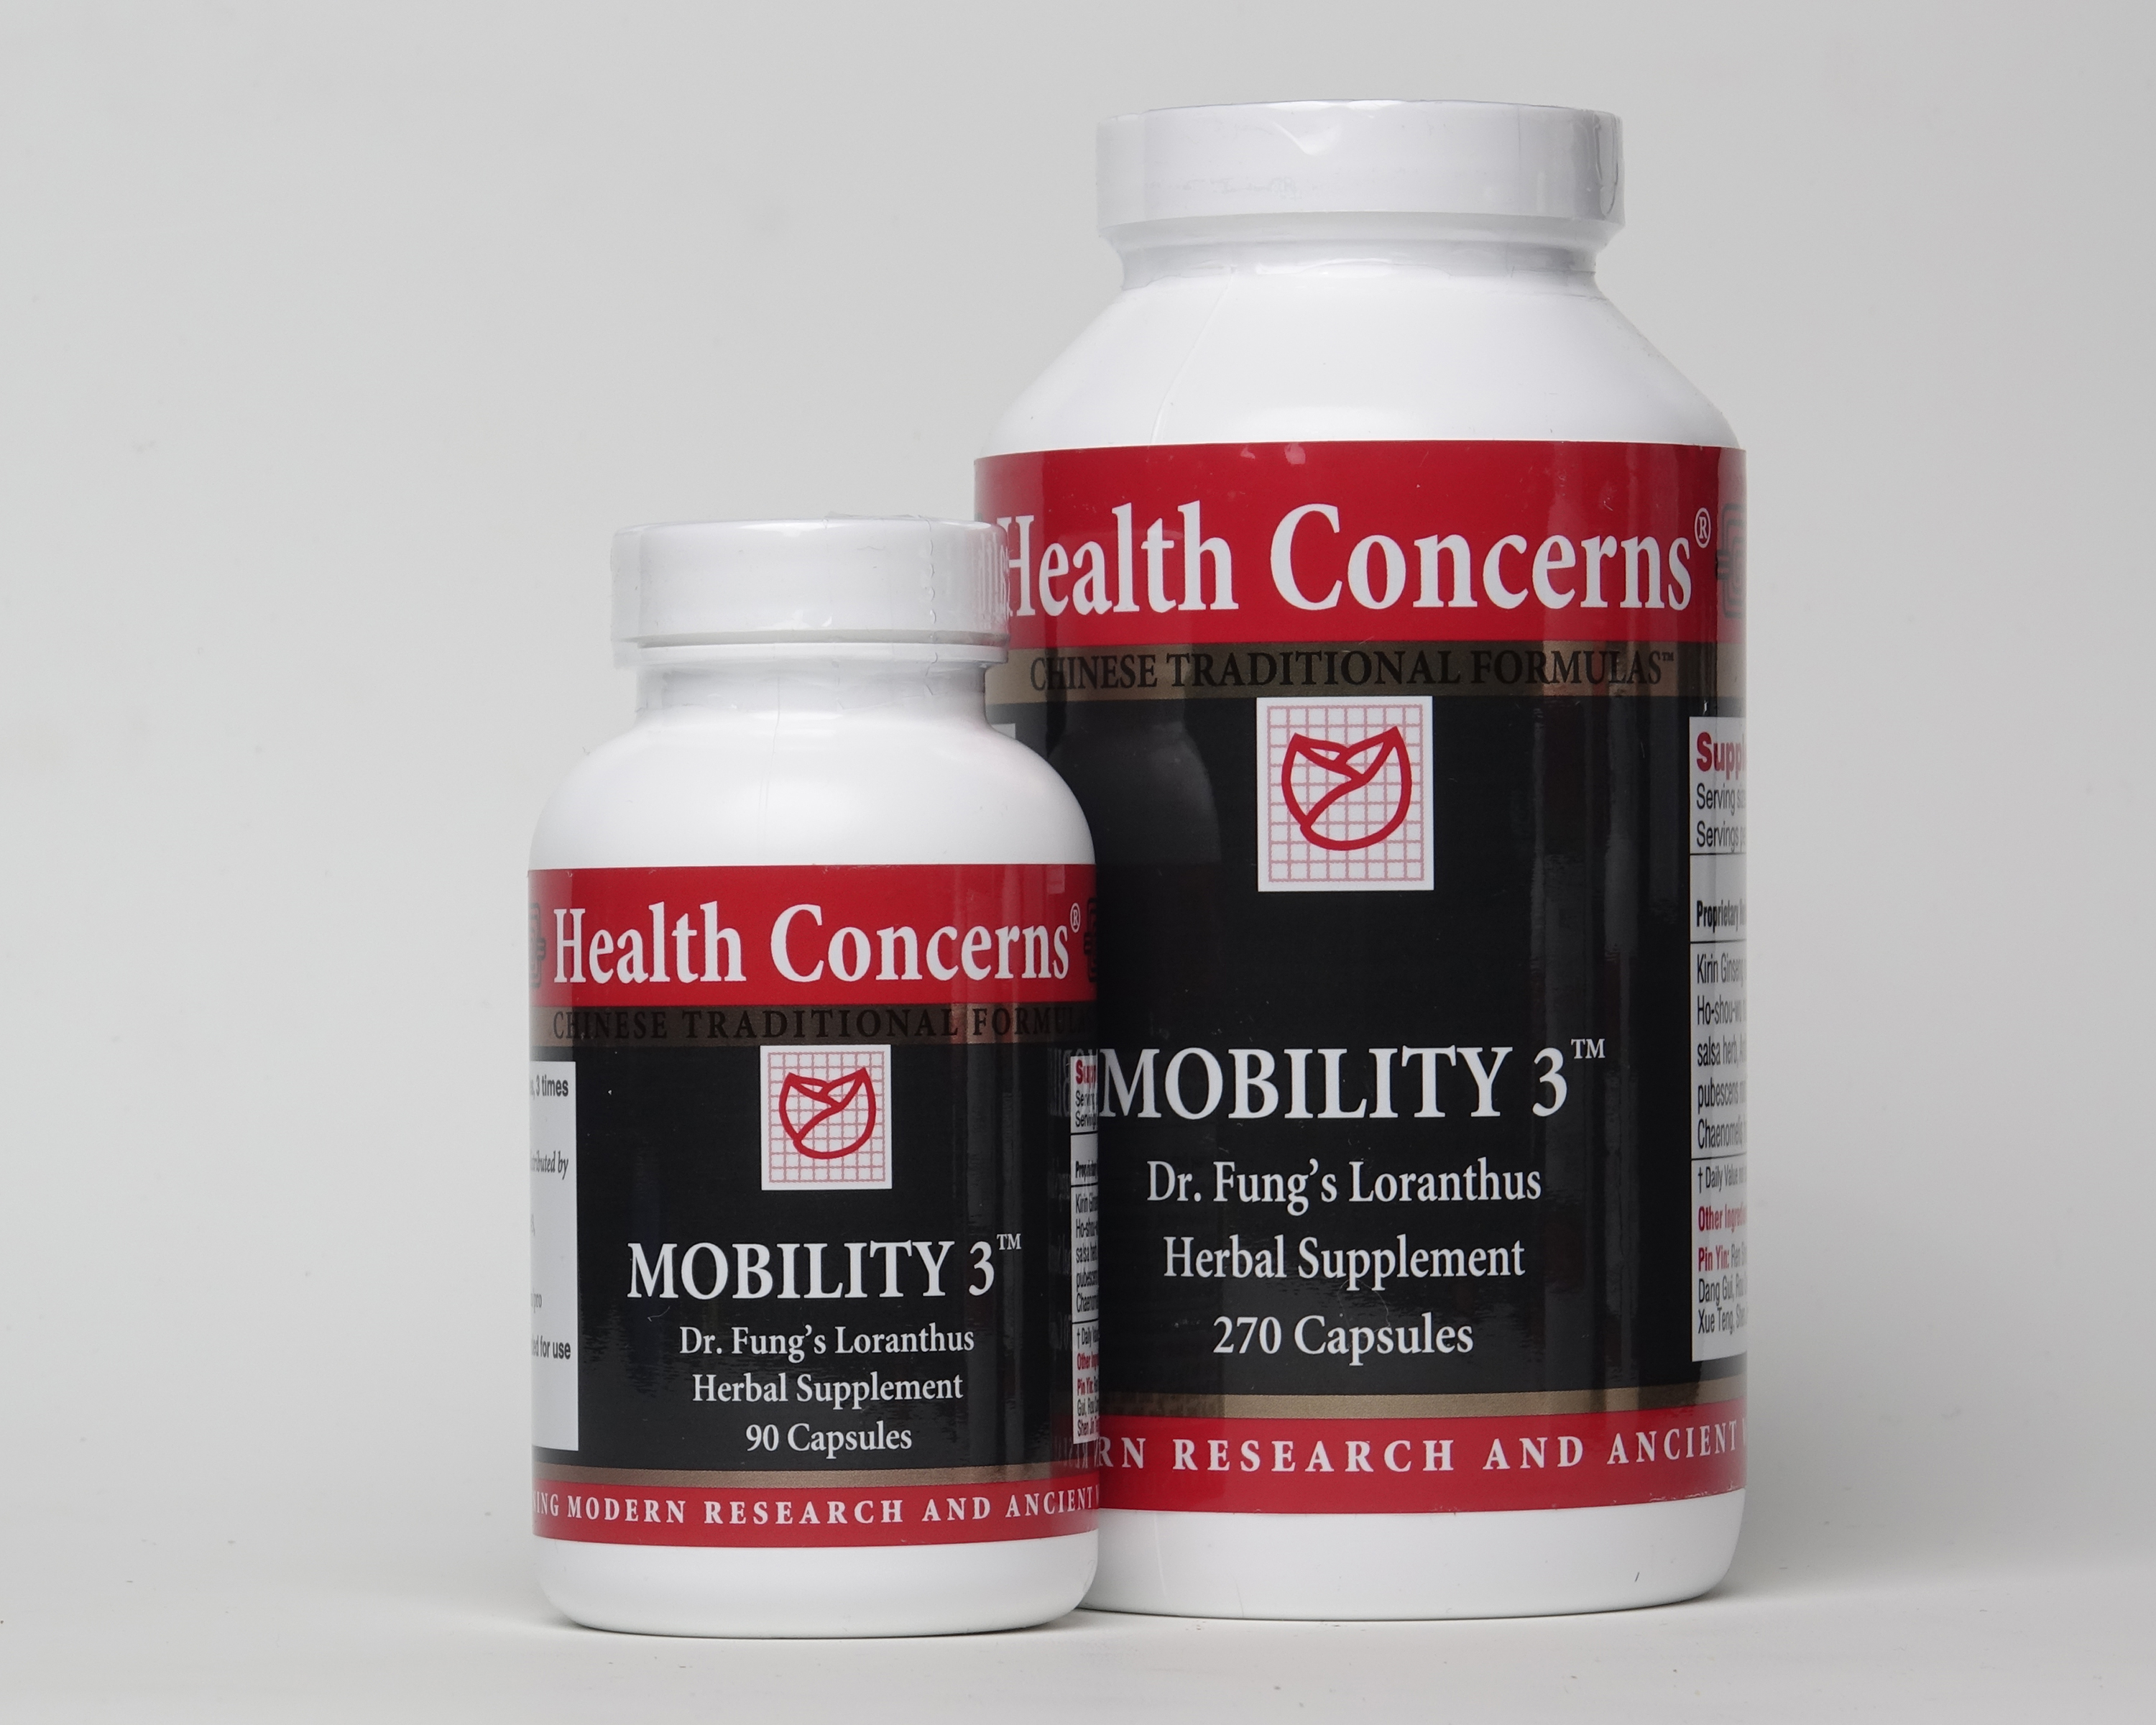 Mobility 3 (Dr. Fung's Loranthus Herbal Supplement), 270 caps